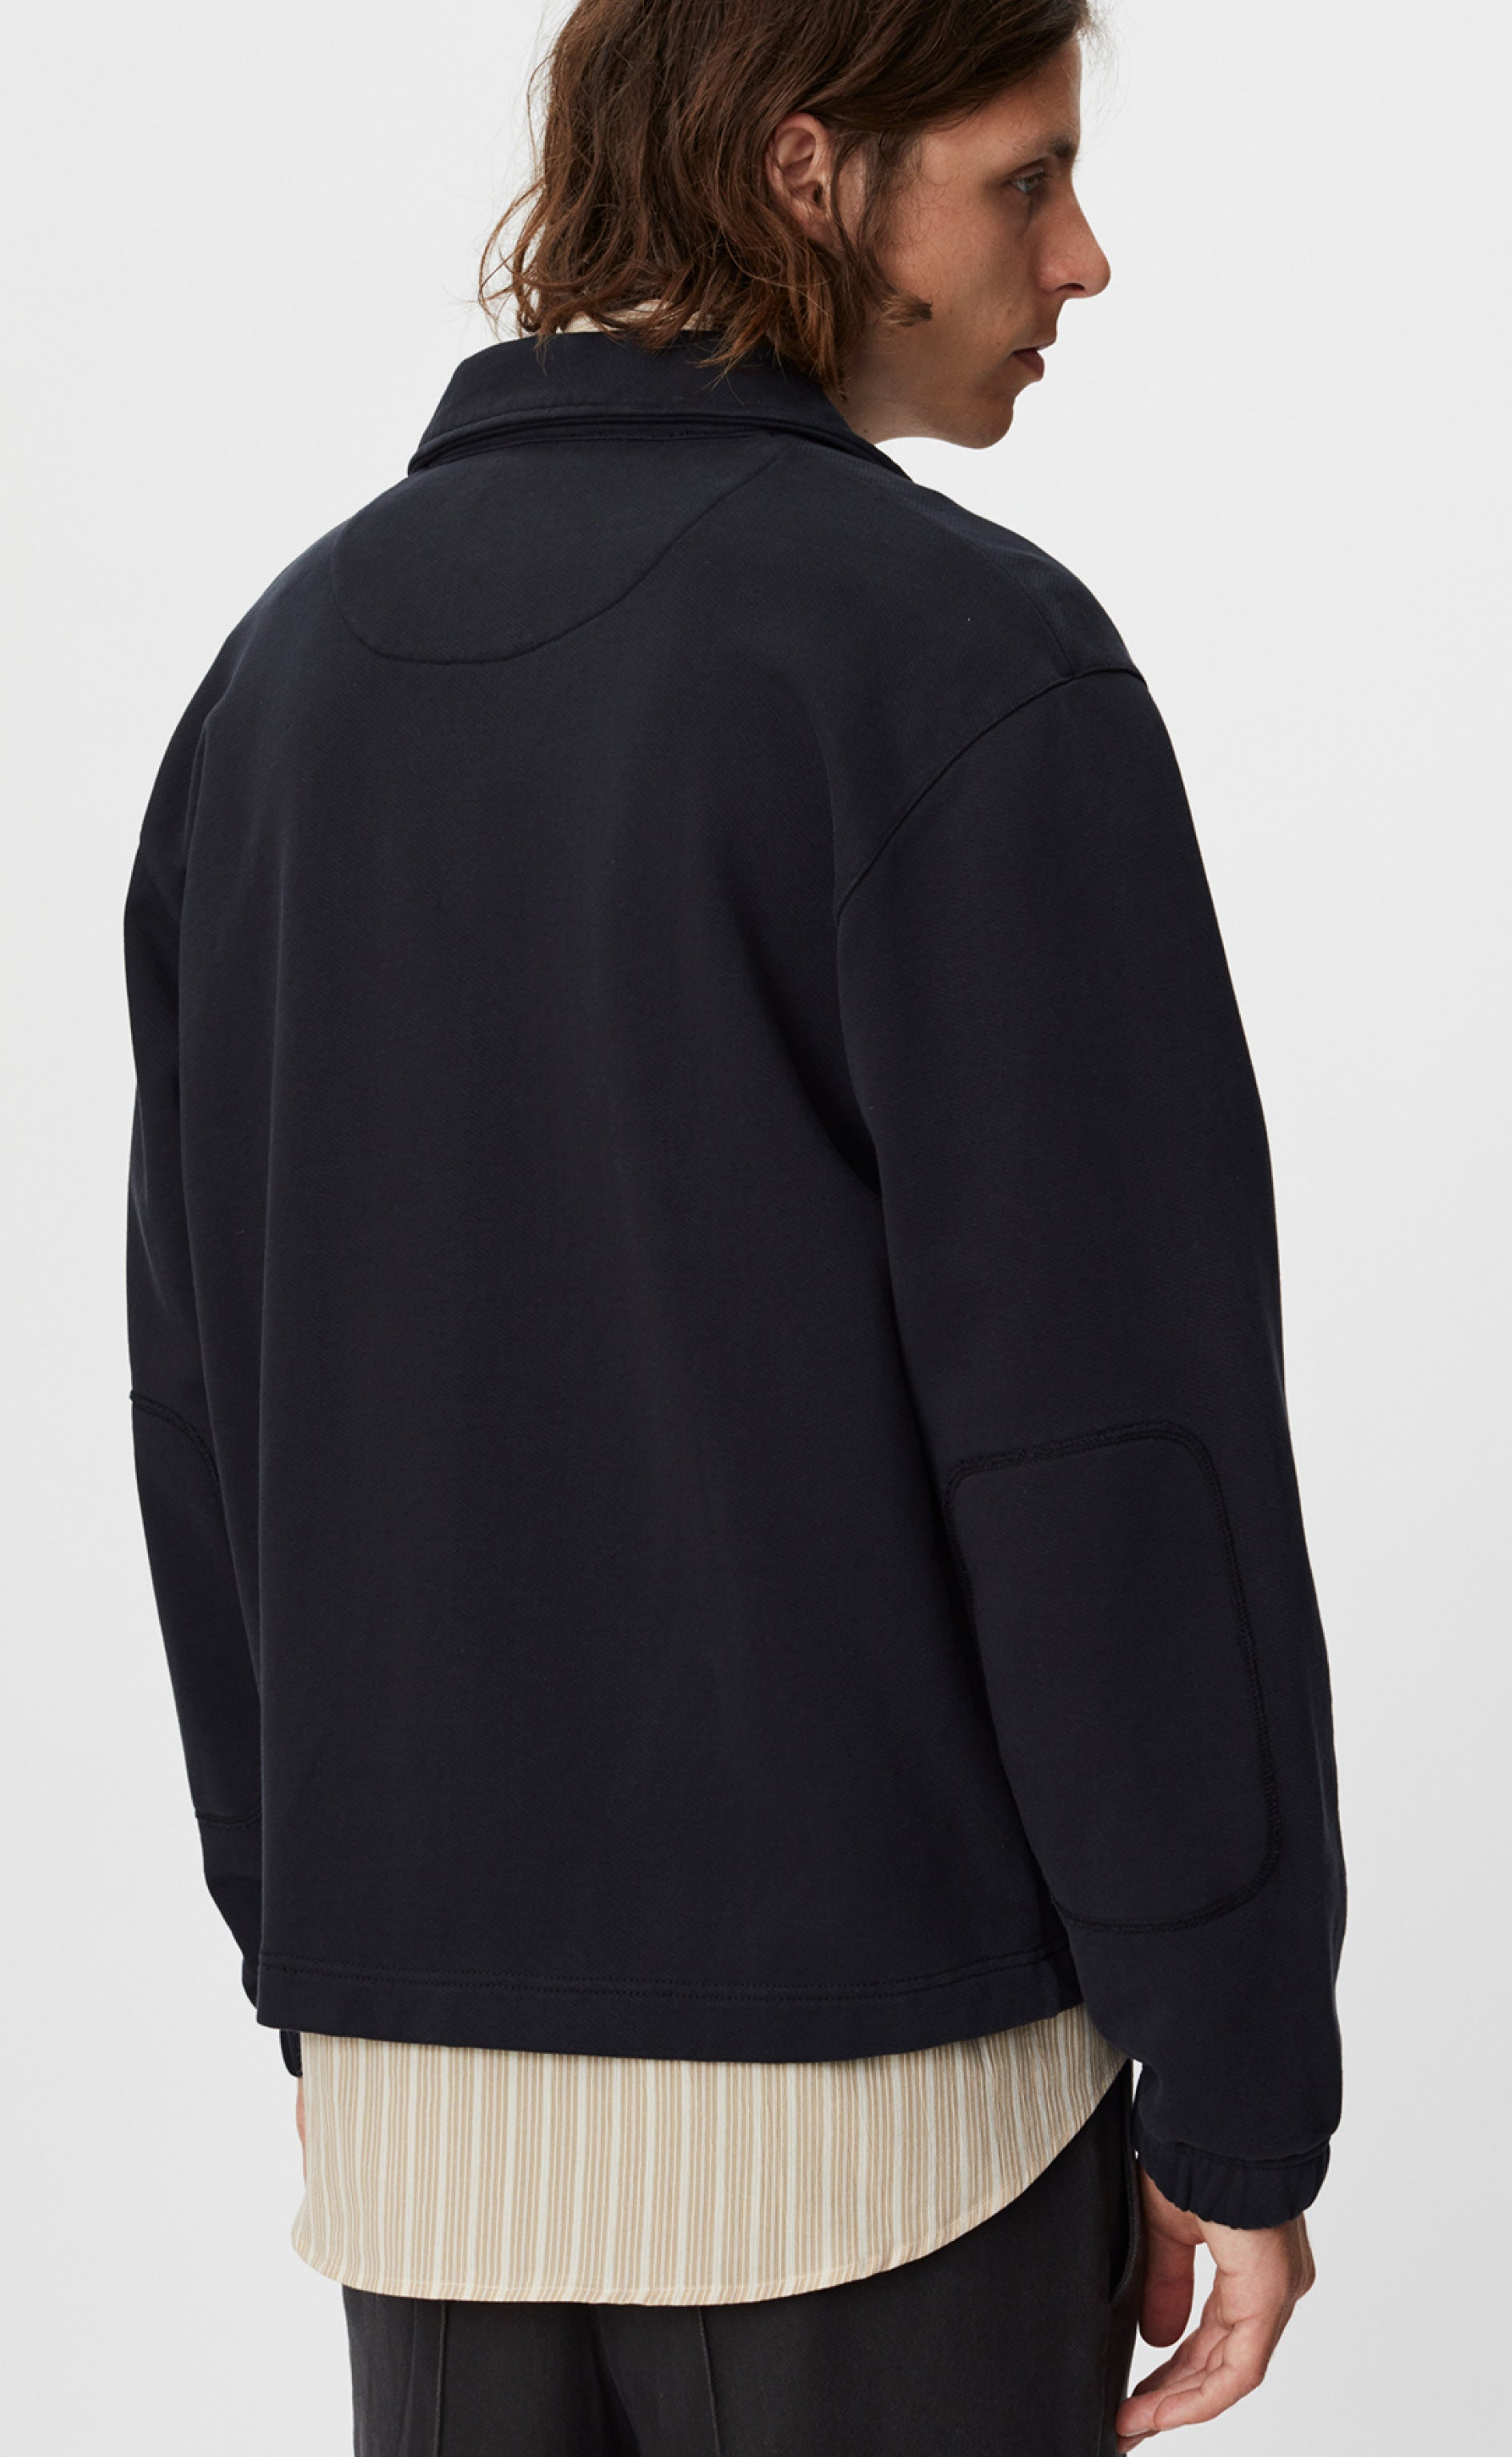 LUCEN TRACK TOP - WASHED BLACK